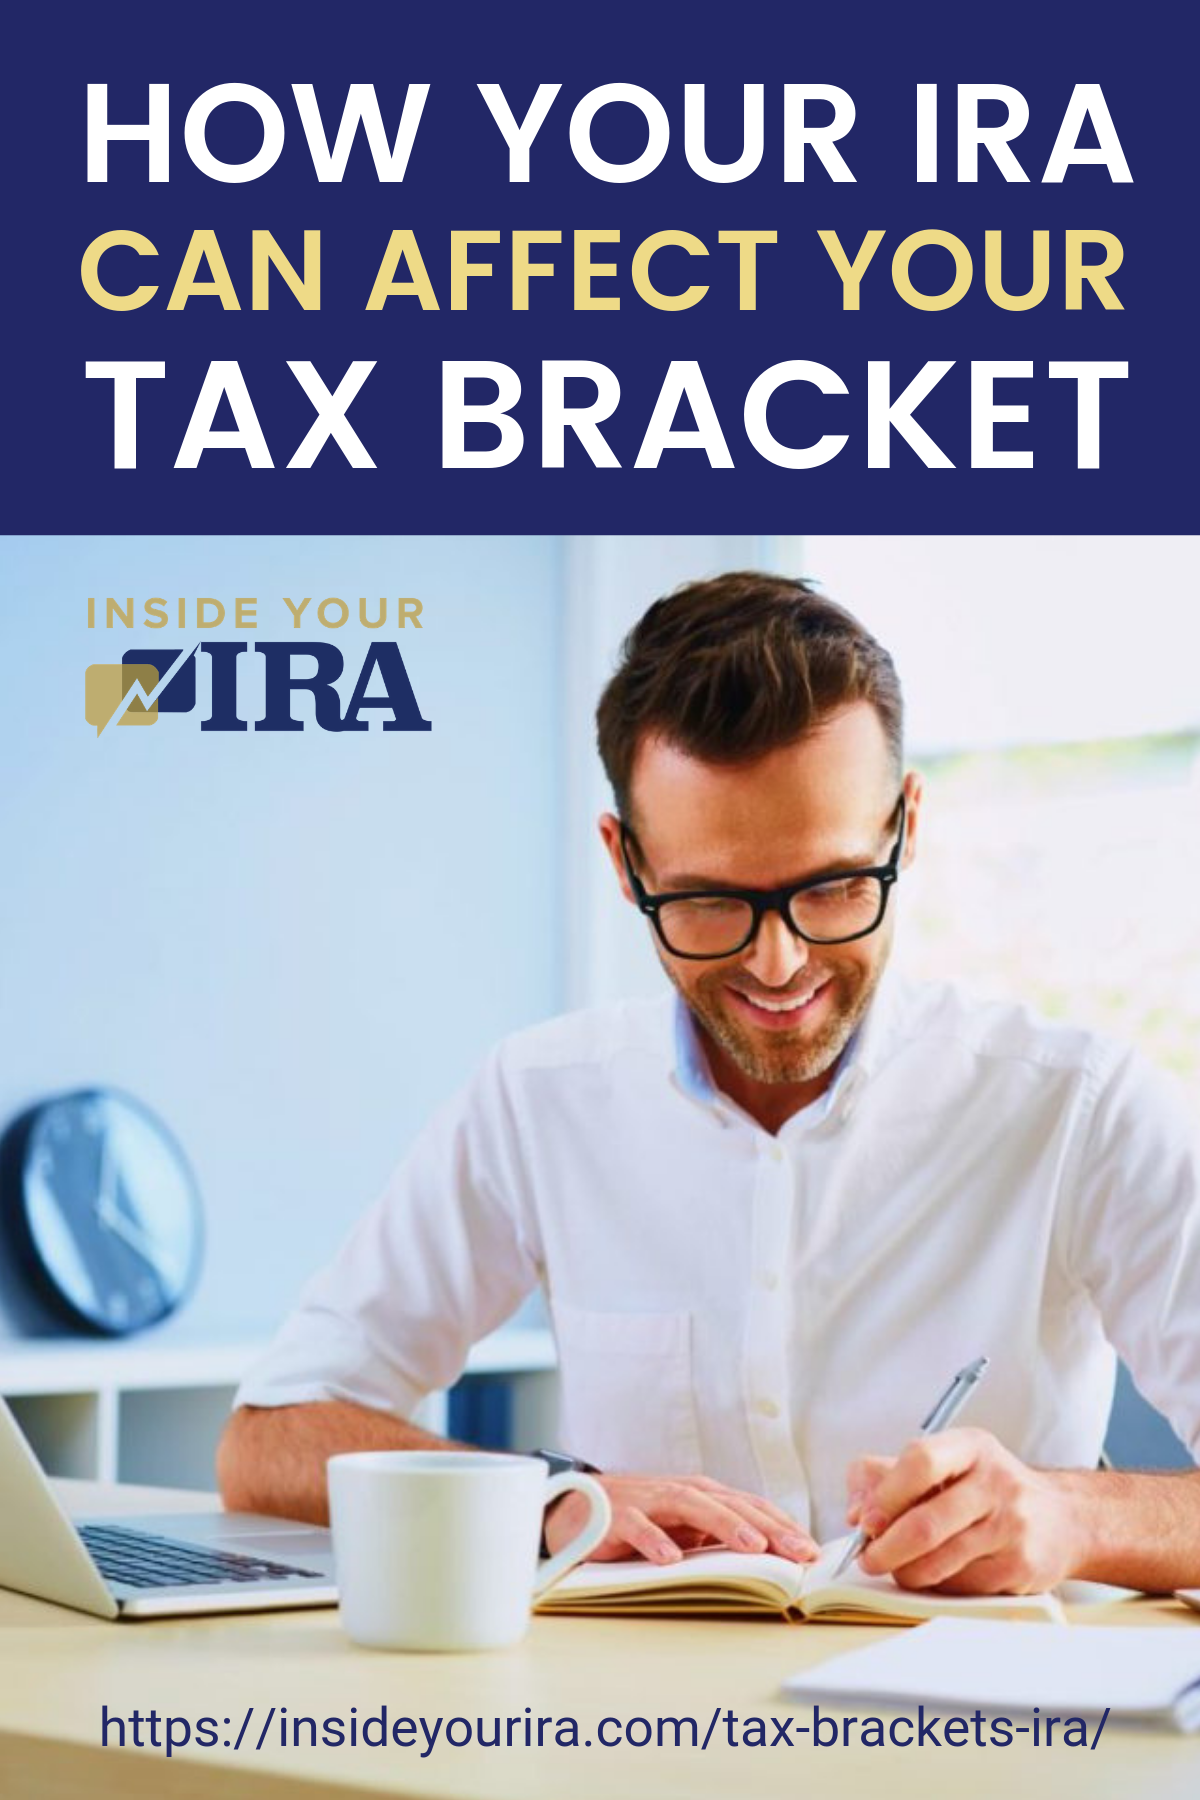 How Your IRA Can Affect Your Tax Bracket   Inside Your IRA https://insideyourira.com/tax-brackets-ira/